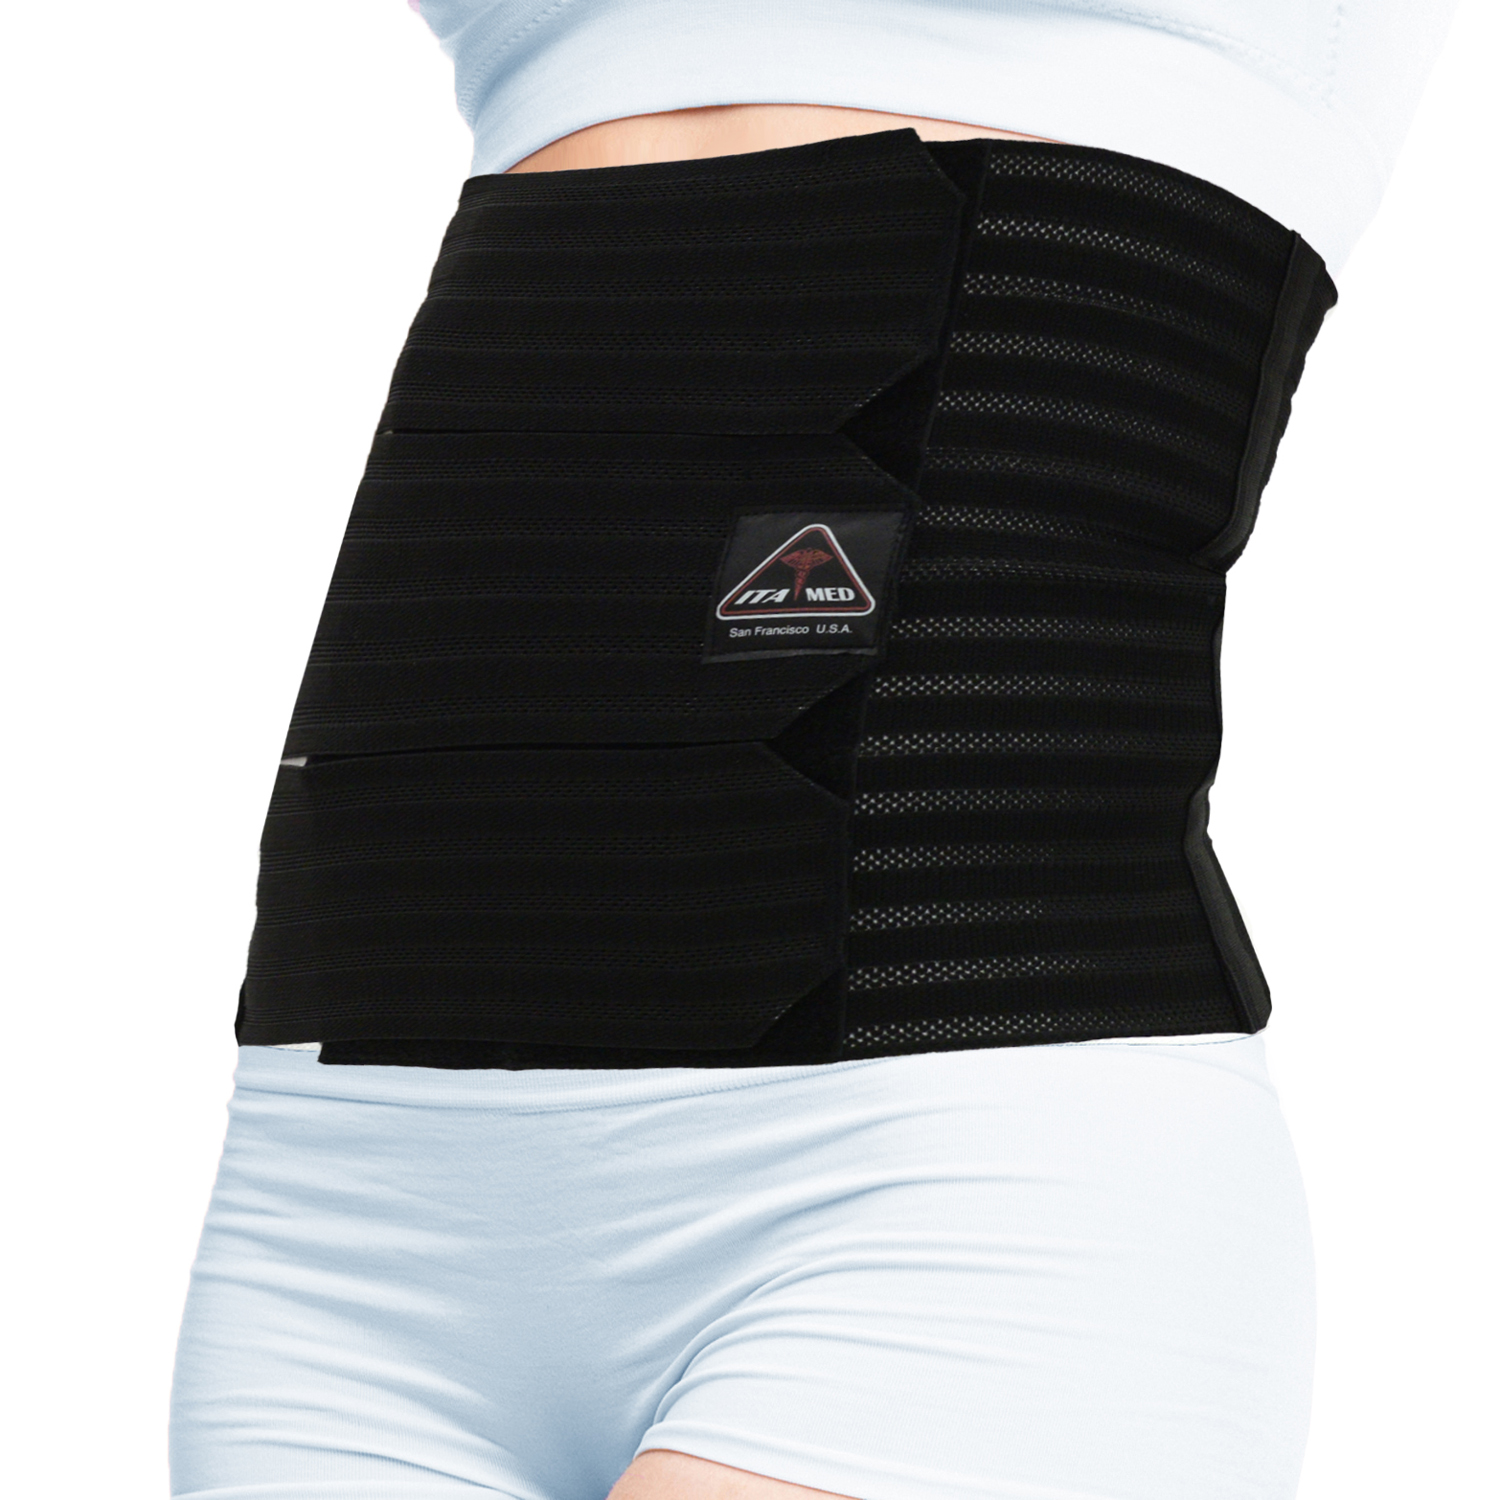 "ITA-MED Style AB-412(W) Women's Breathable Elastic Abdominal Binder (12"" wide)"